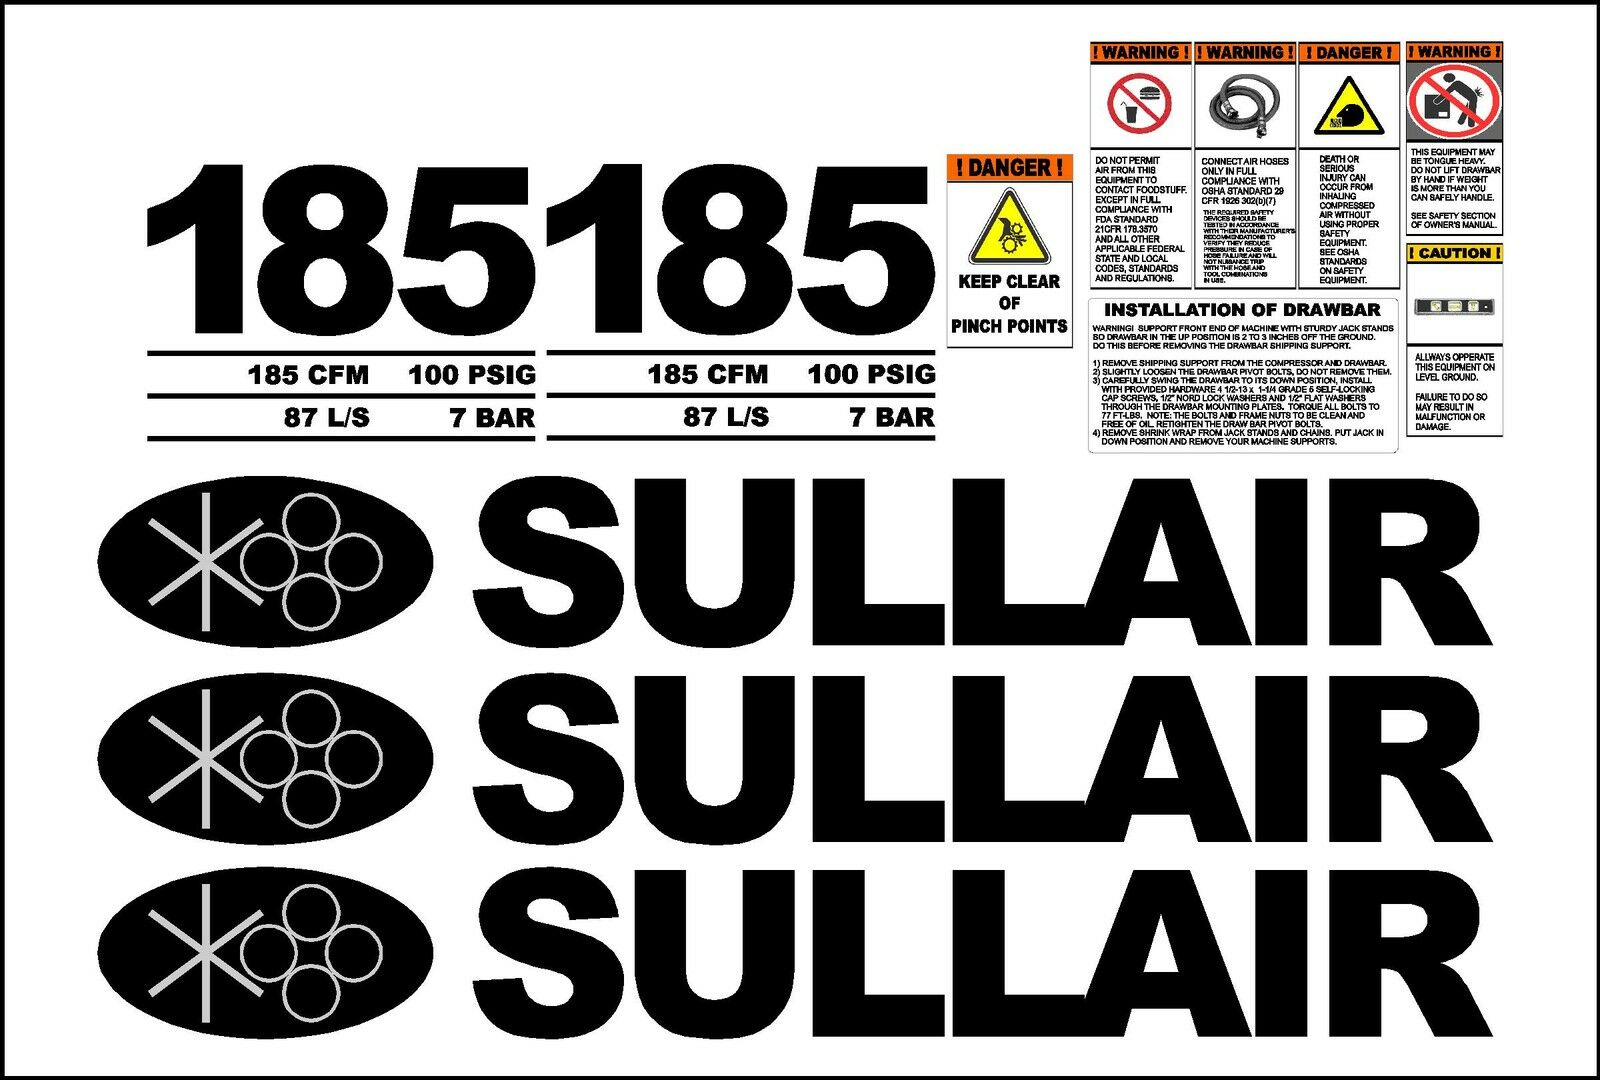 sullair logo. picture 1 of sullair logo